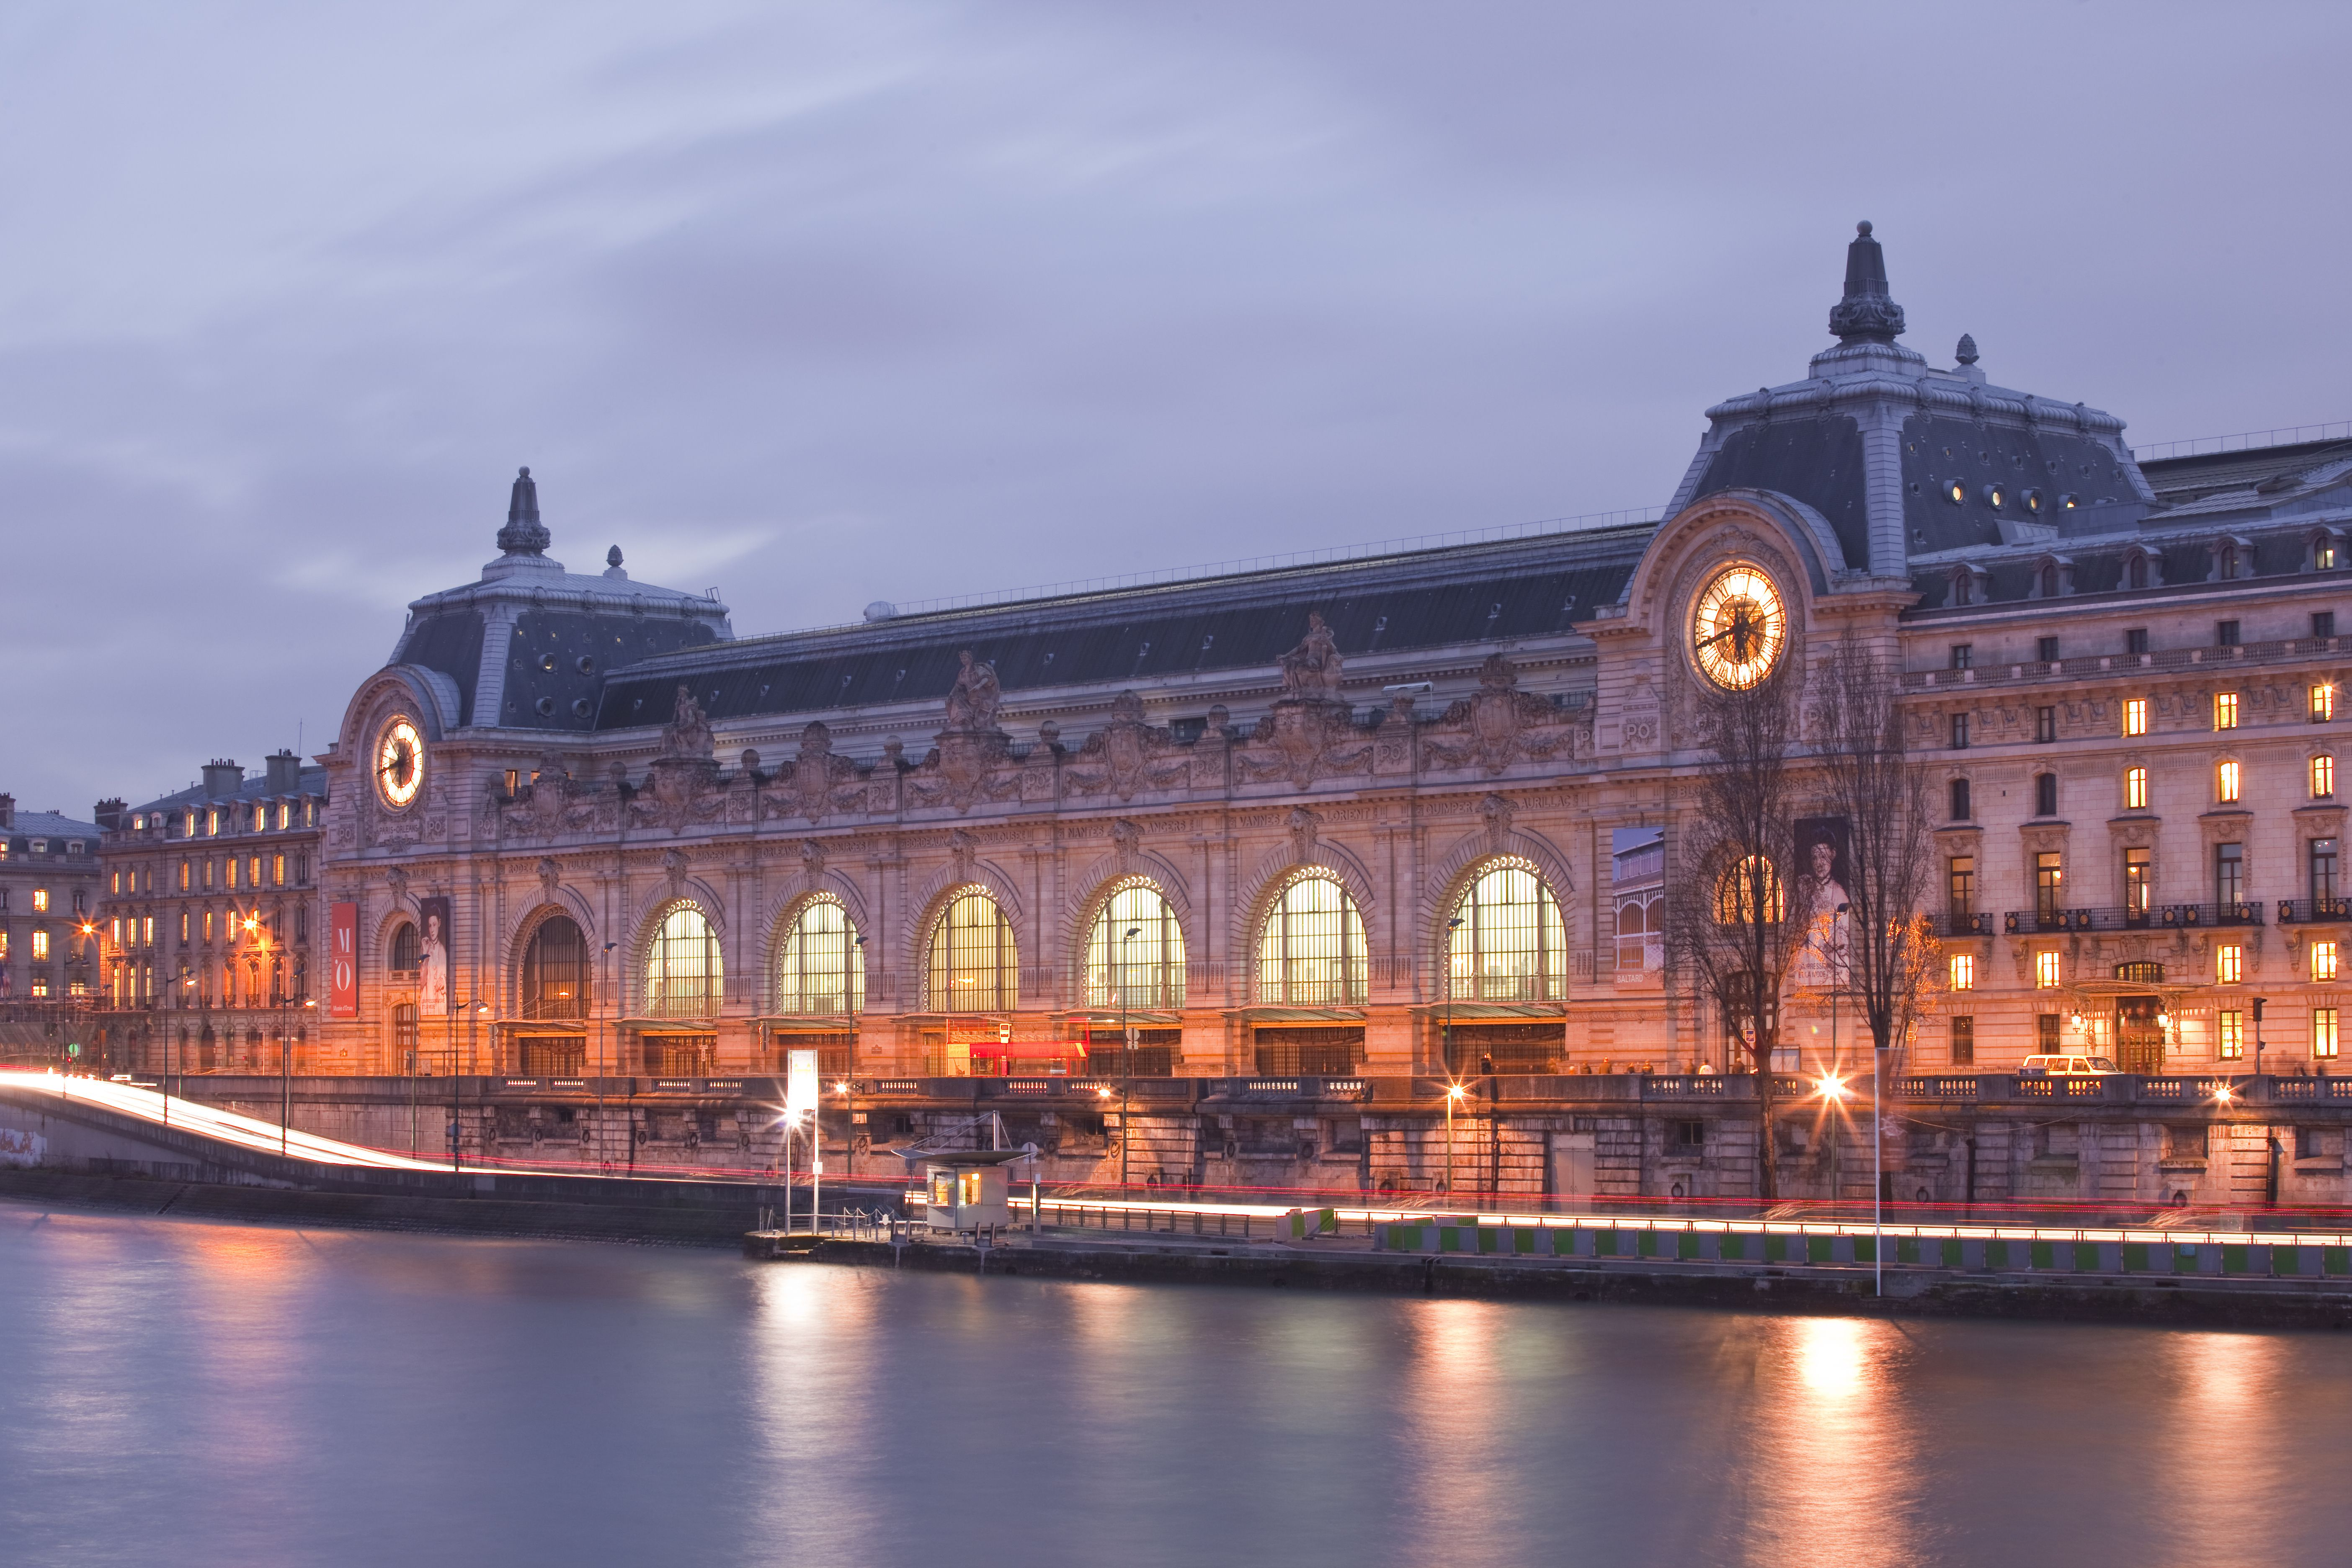 Martin Auto Museum >> Top 5 Tips for Visiting the Musee d'Orsay in Paris